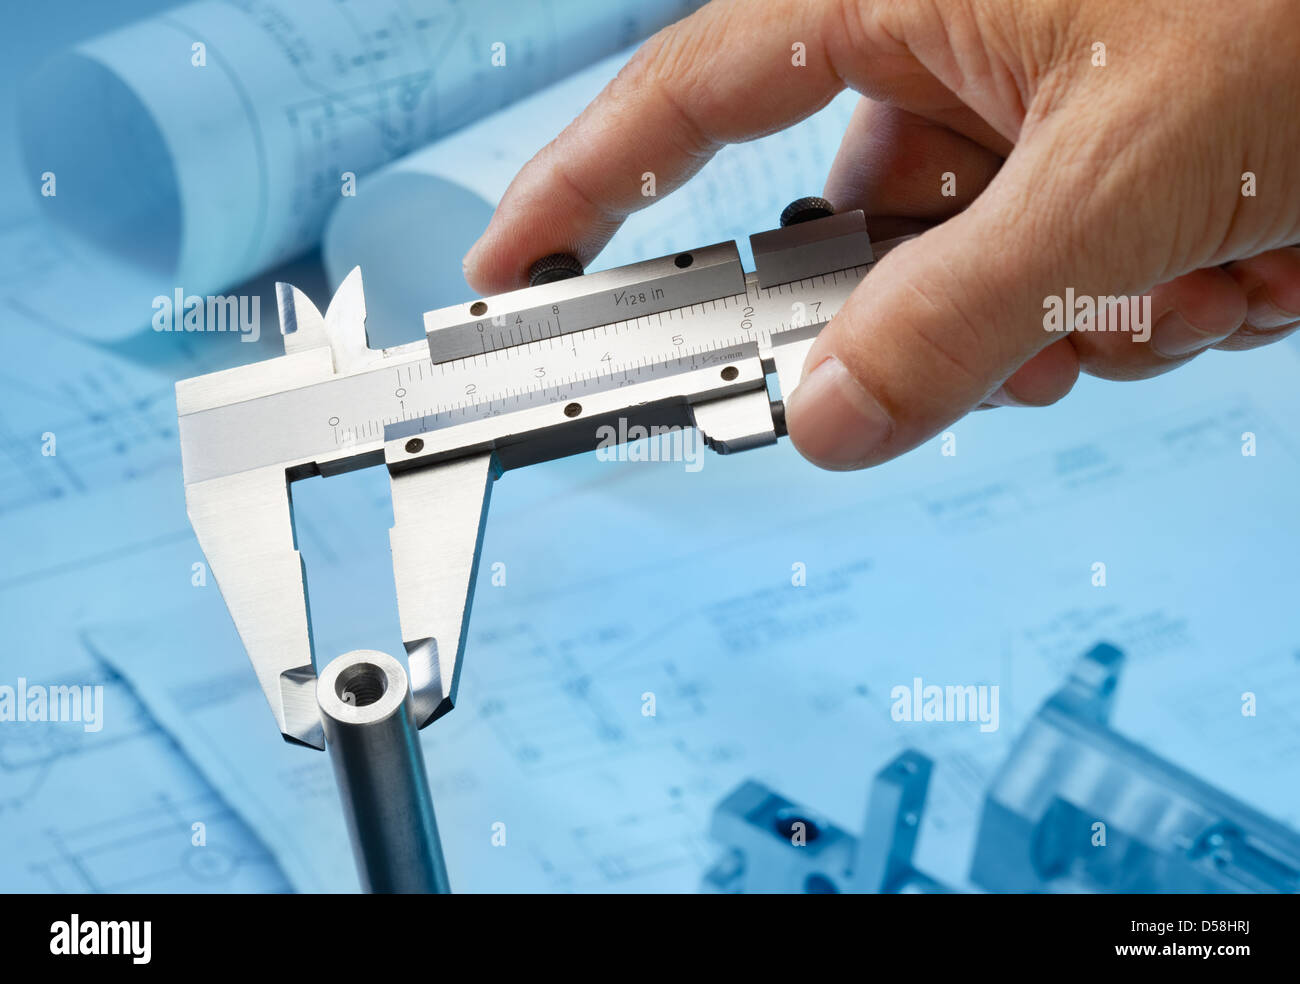 measuring machine part with caliper, blueprint as background - Stock Image